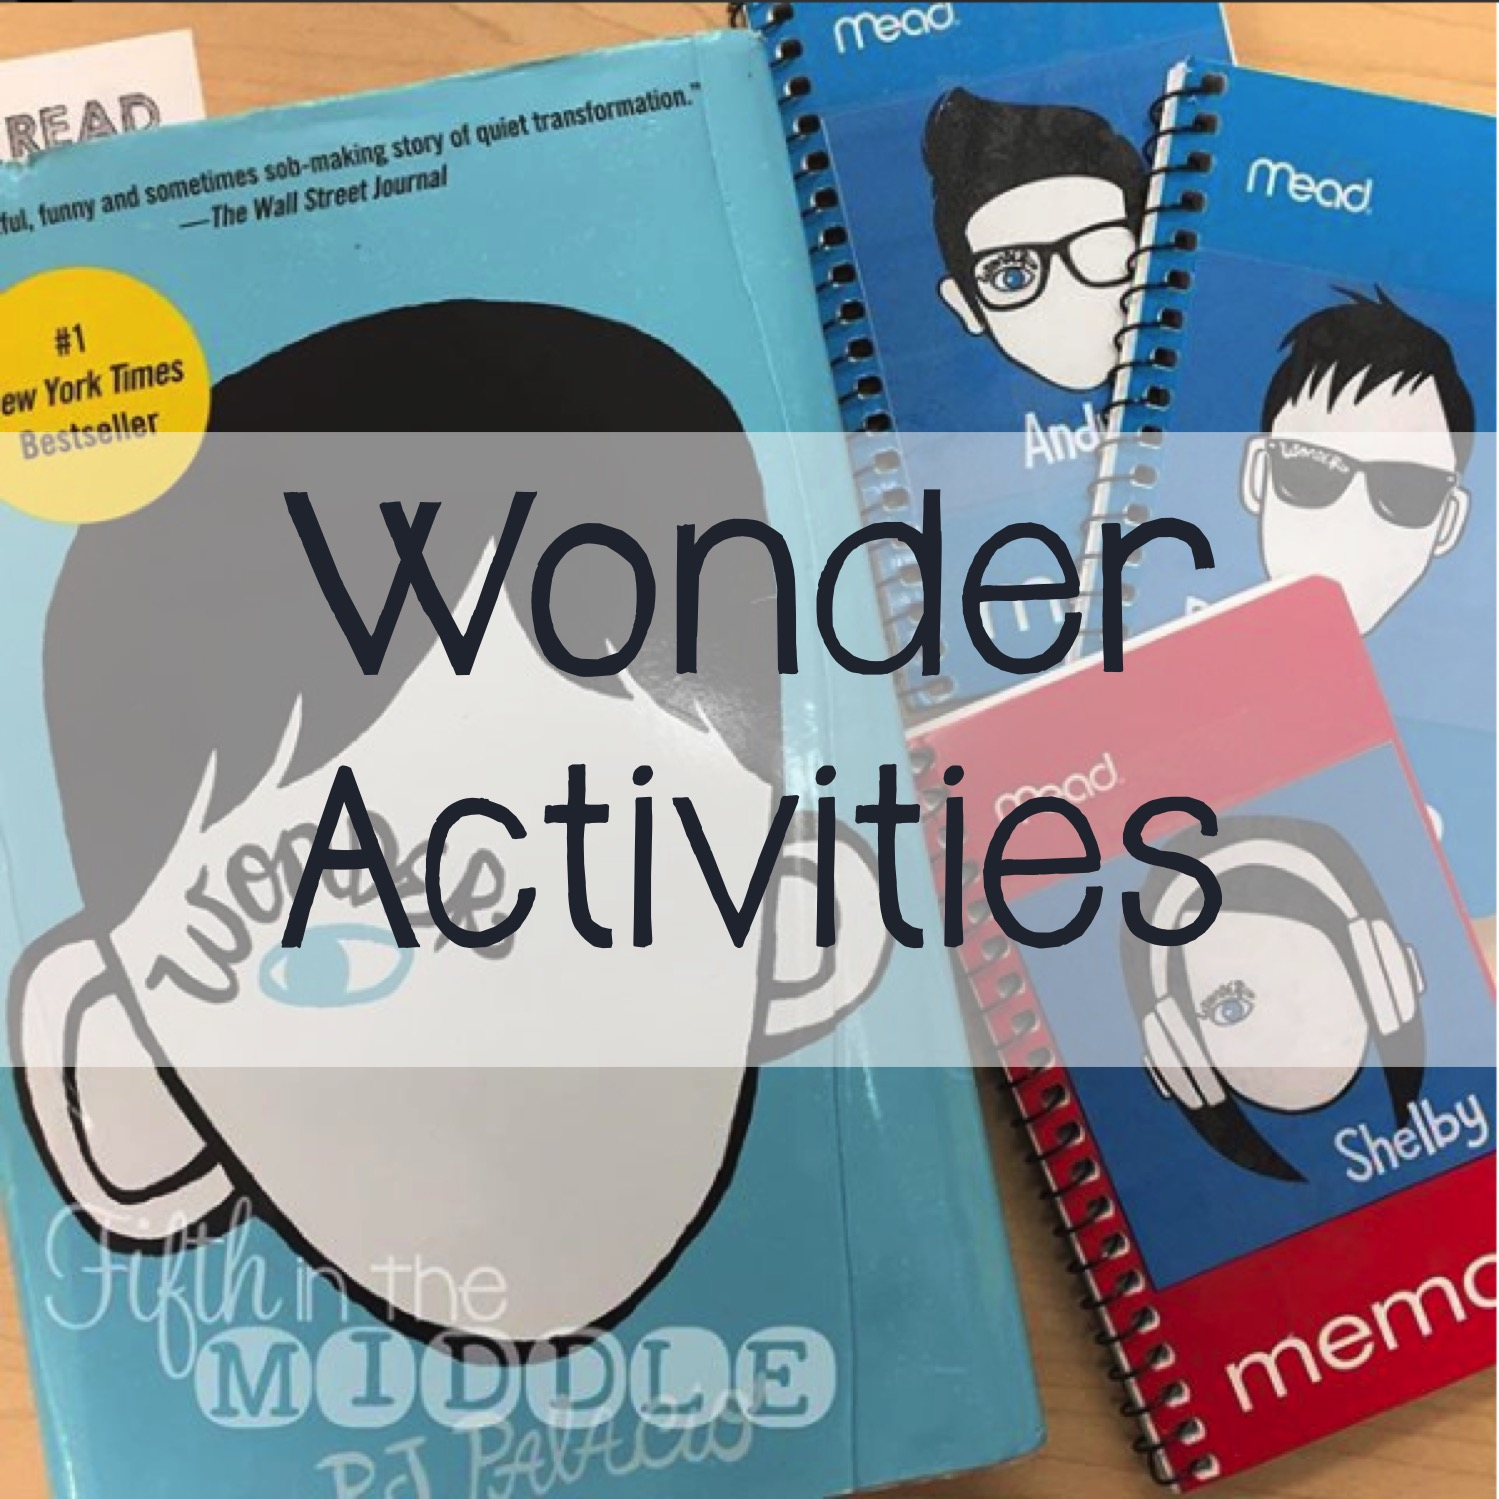 Ideas for implementing the book Wonder by R. J. Palacio in your classroom